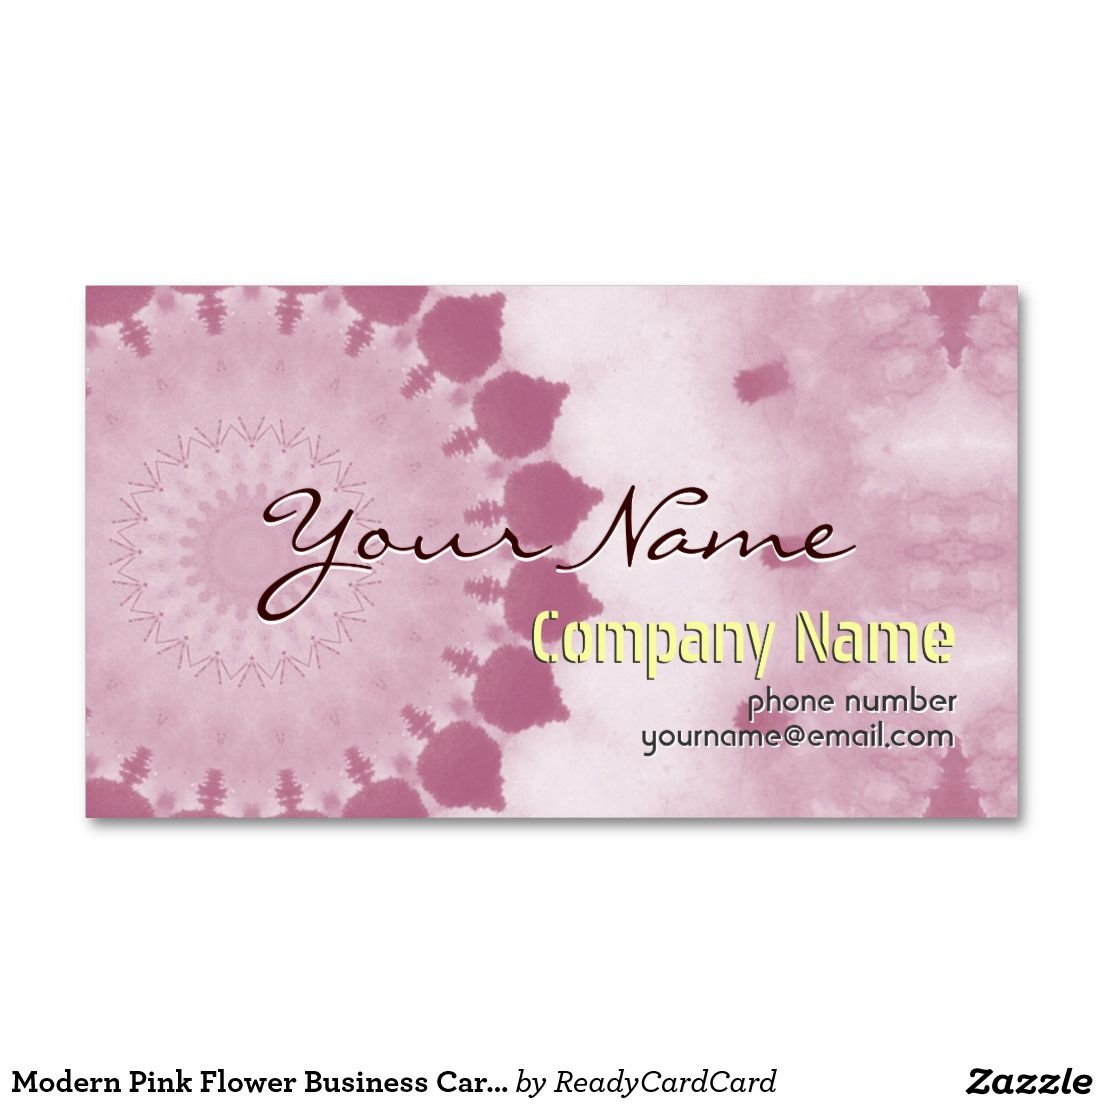 Modern Pink Flower Business Cards template | BIG HIT !!! | Pinterest